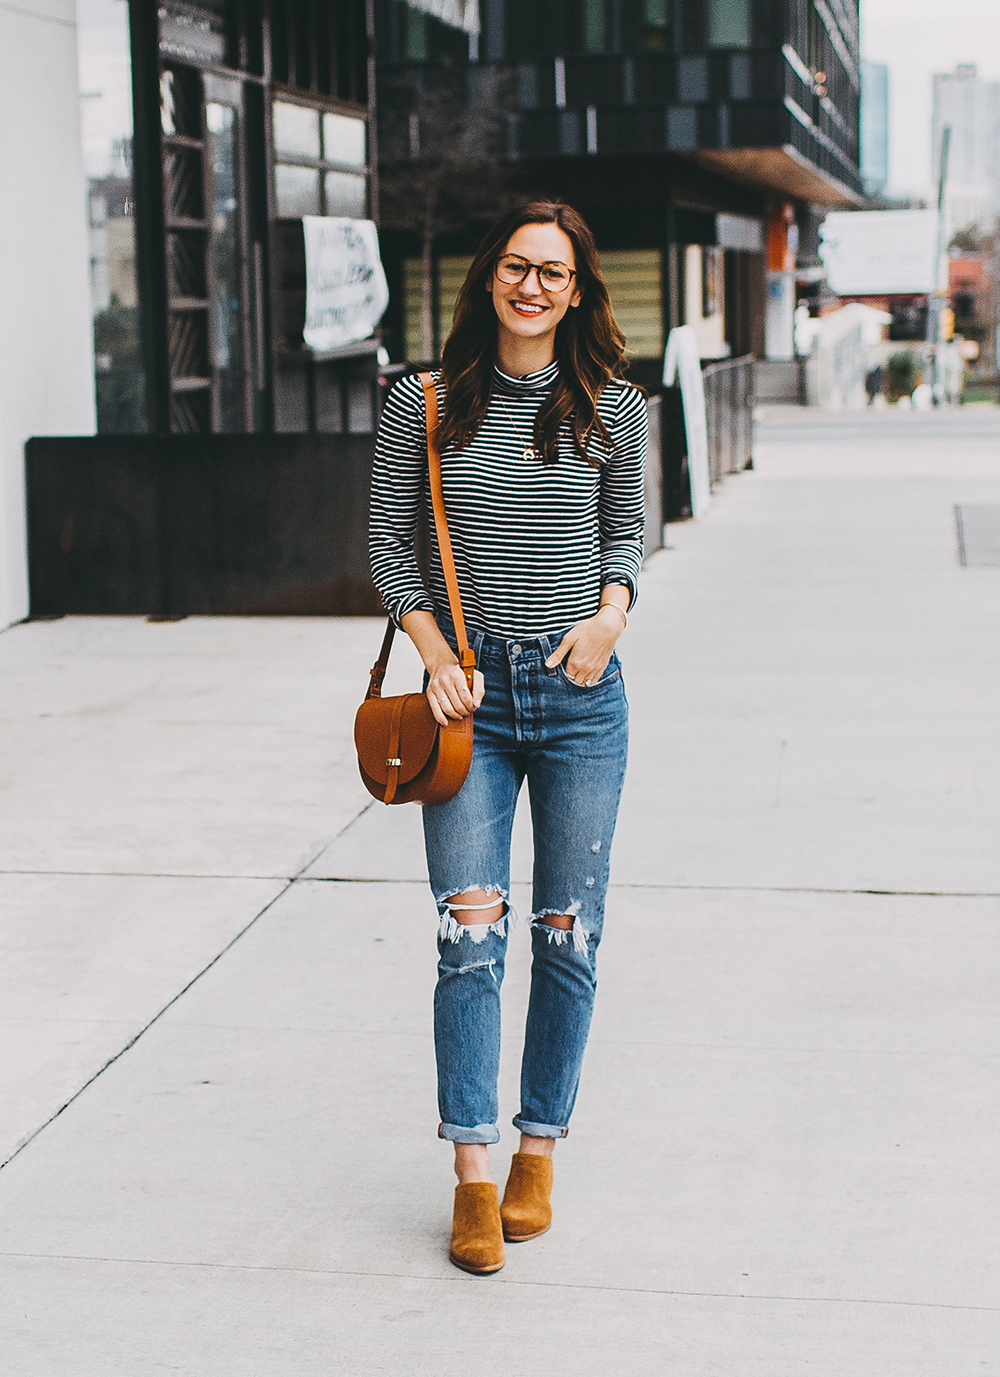 livvyland-blog-olivia-watson-austin-texas-fashion-blogger-j-crew-striped-turtleneck-outfit-idea-inspiration-11